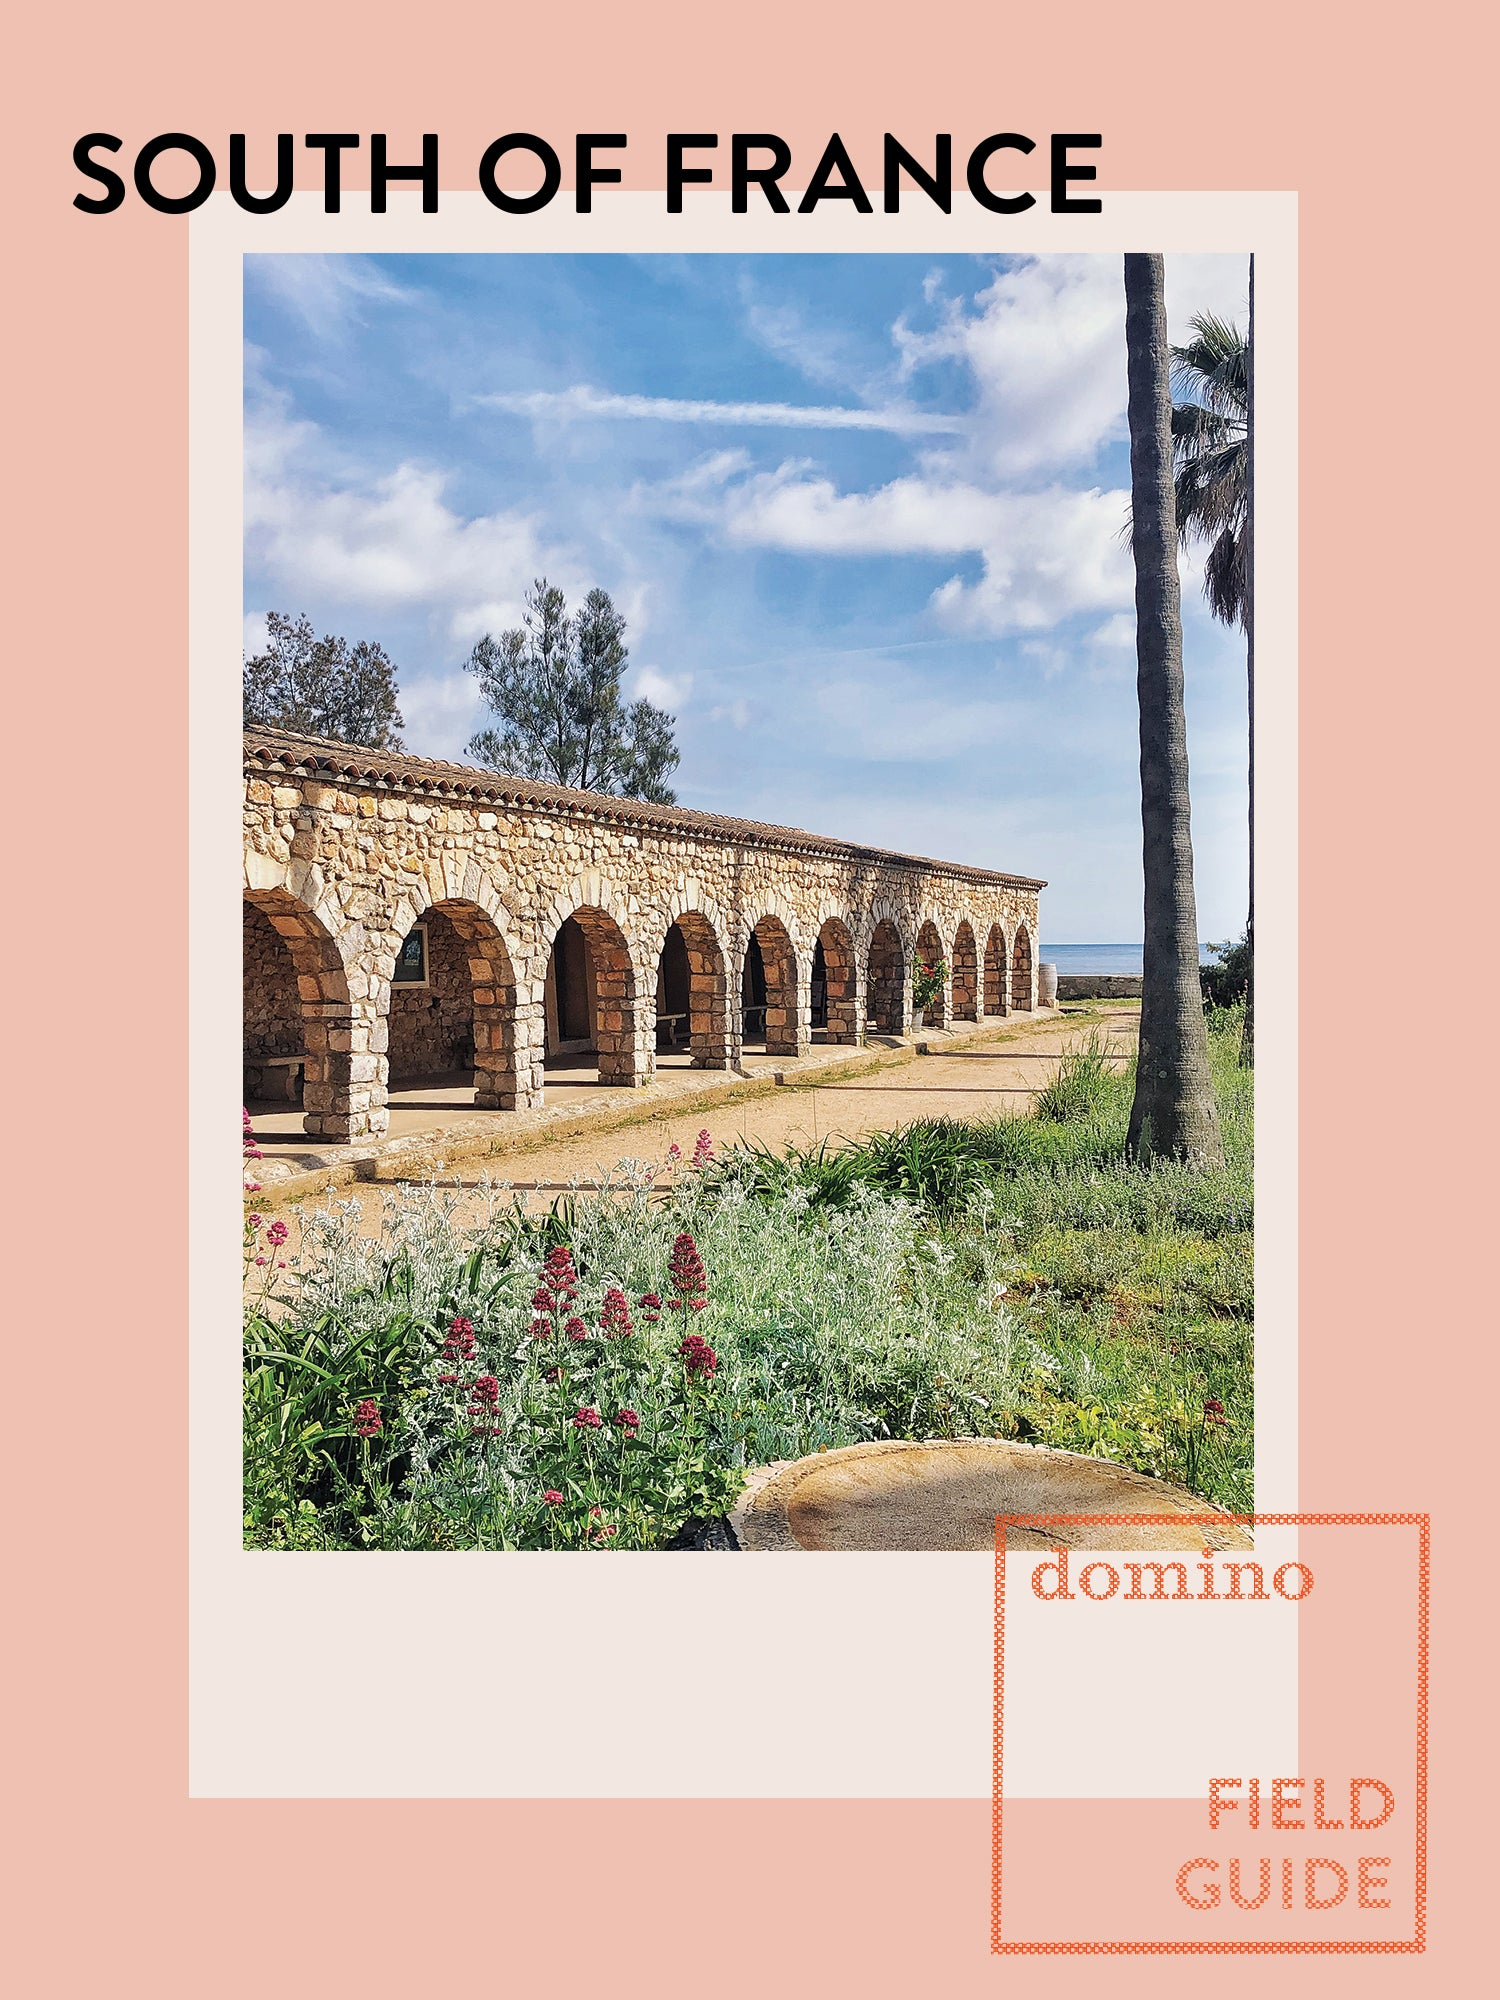 00_FEATURE_FieldGuide_SouthOfFrance